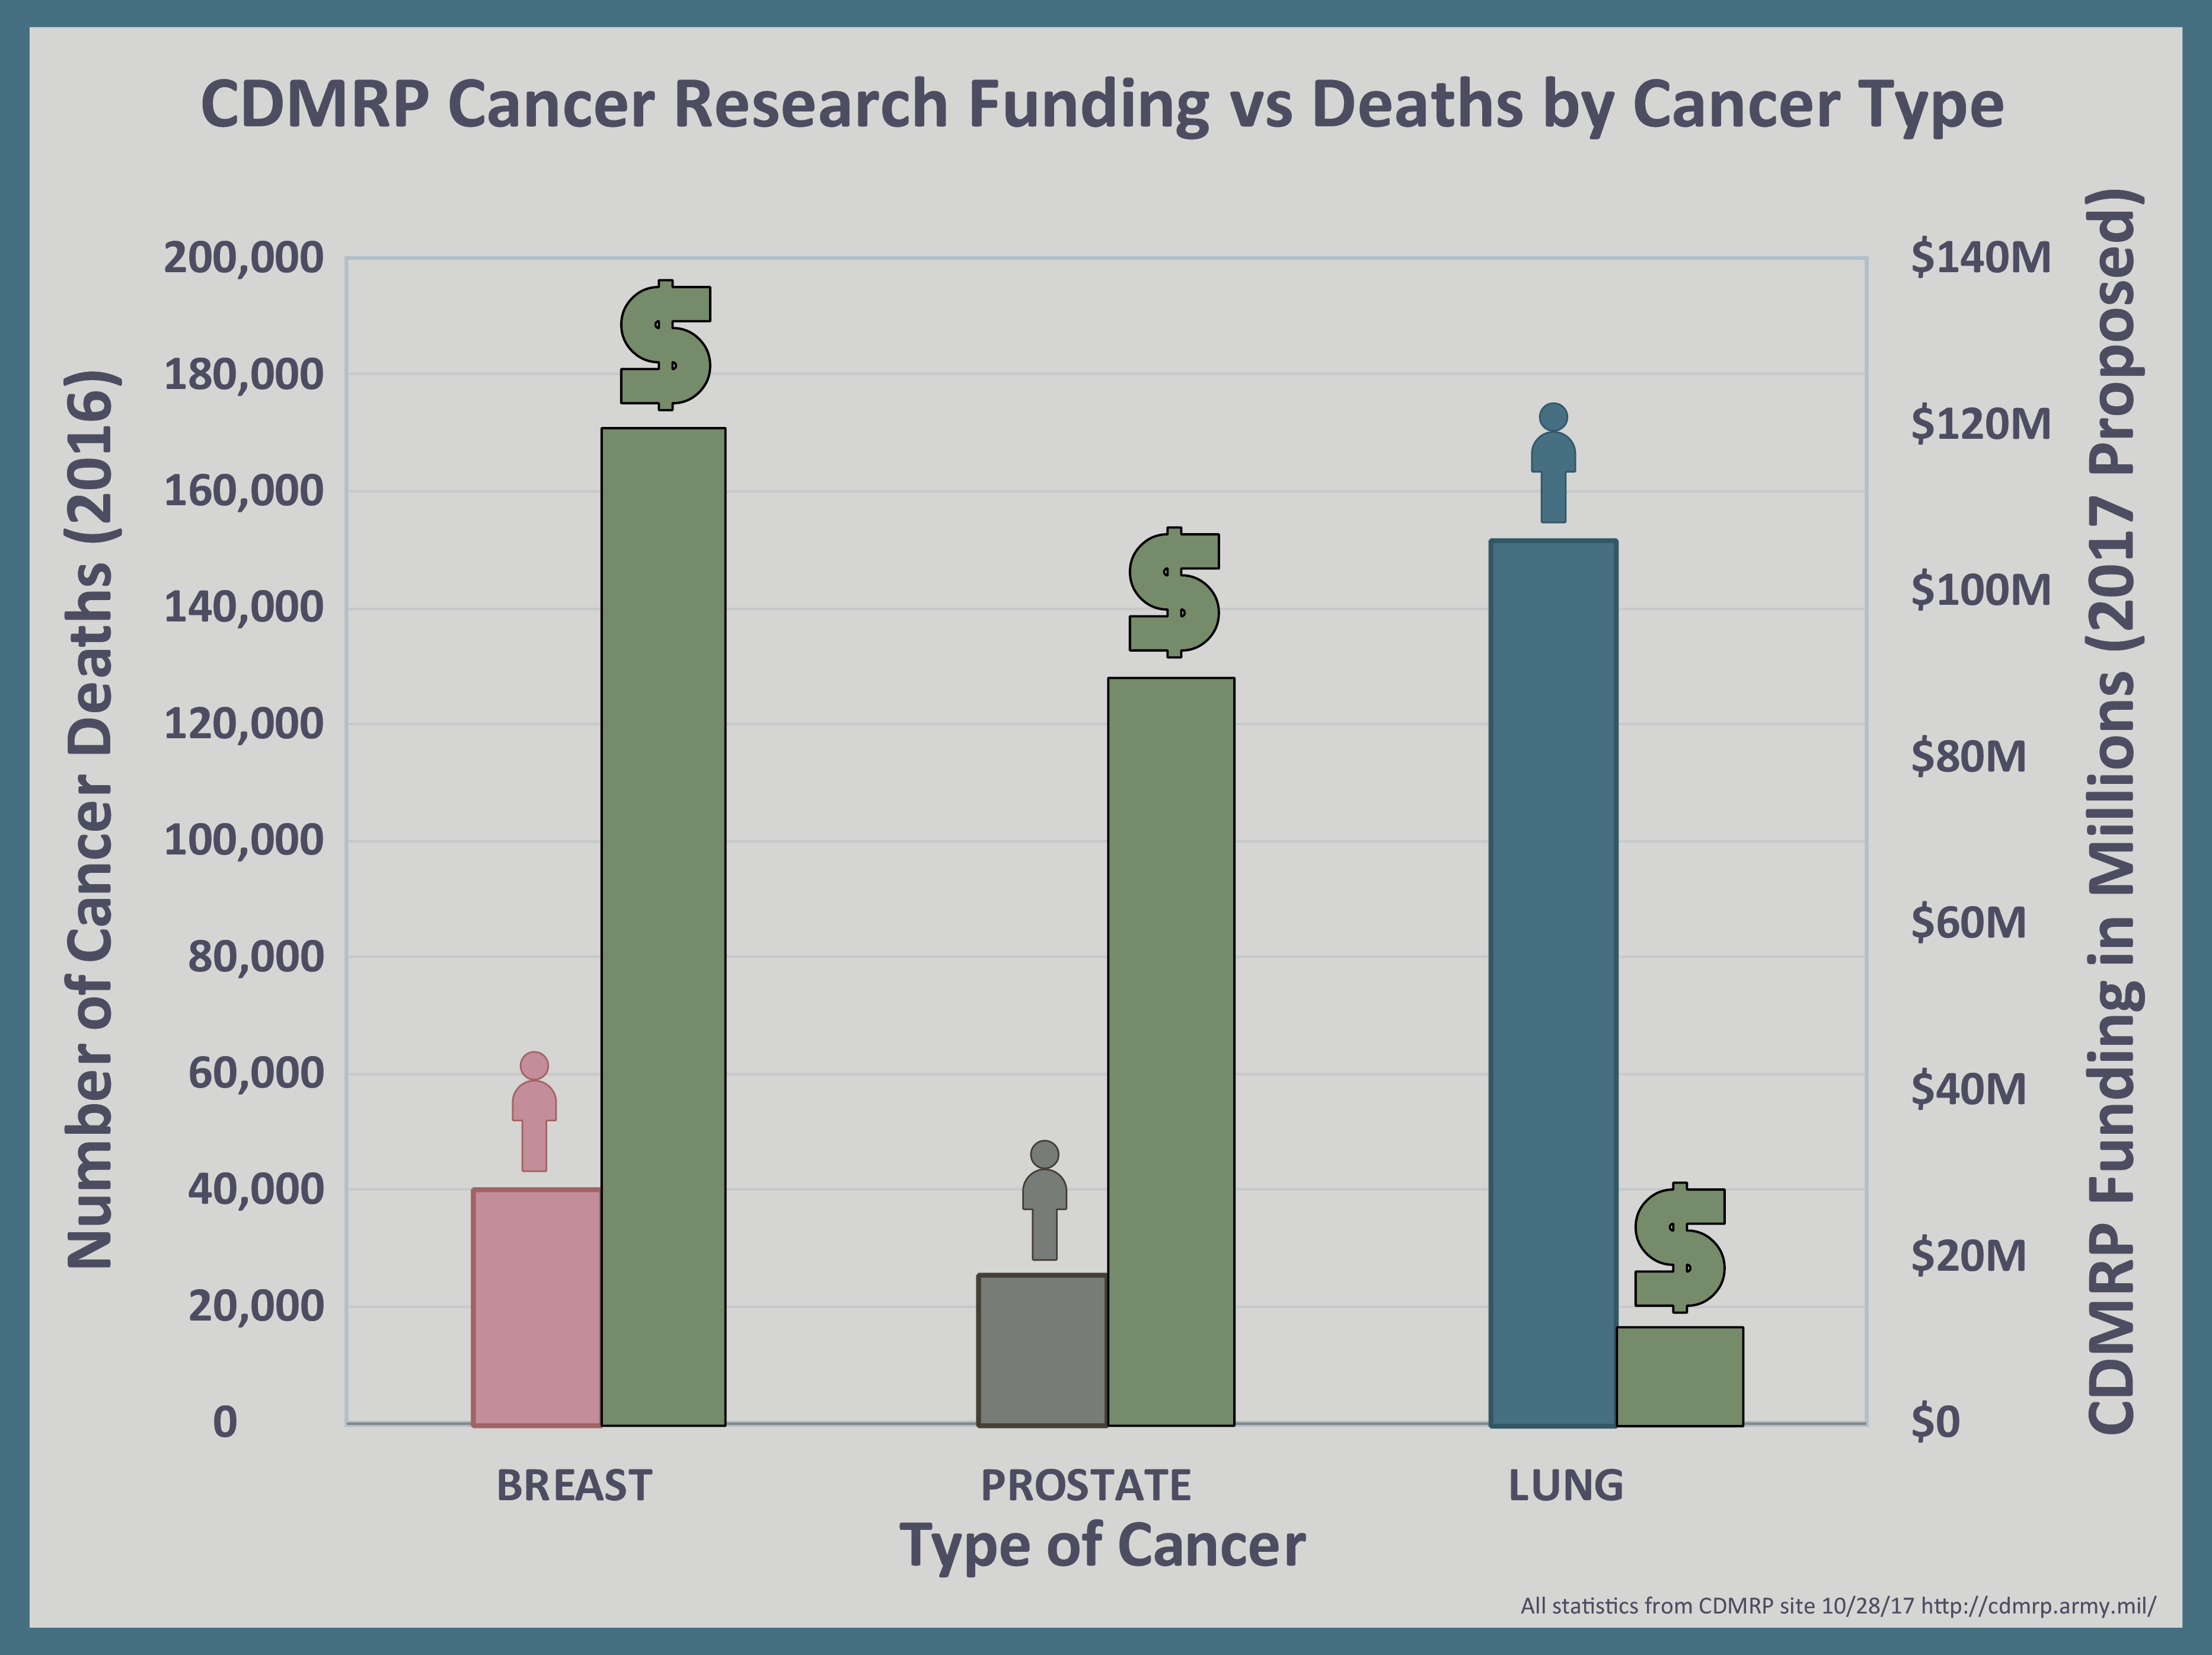 Cancer funding disparities graph